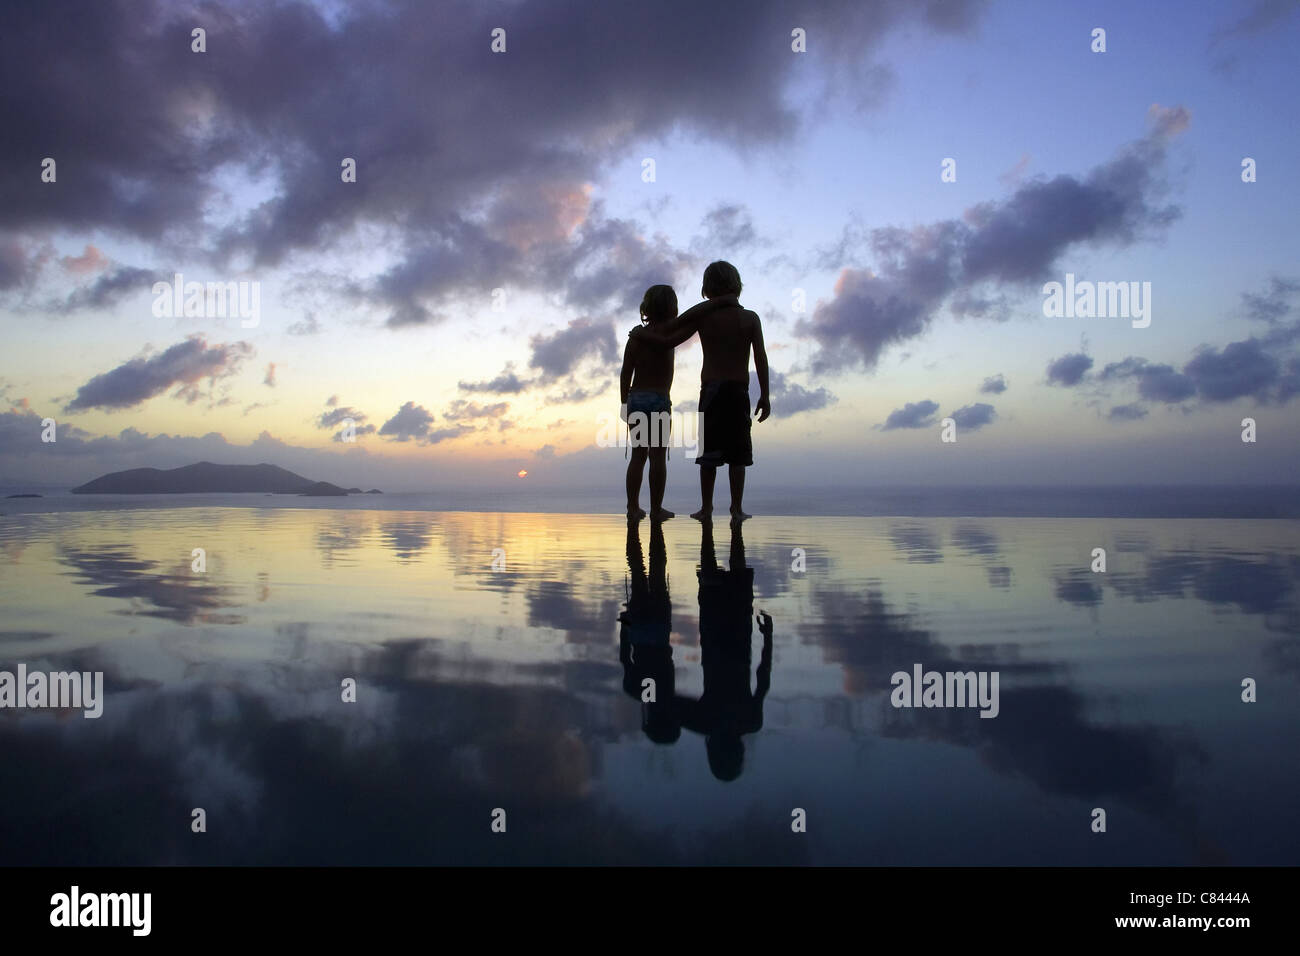 Children standing on beach at sunset - Stock Image